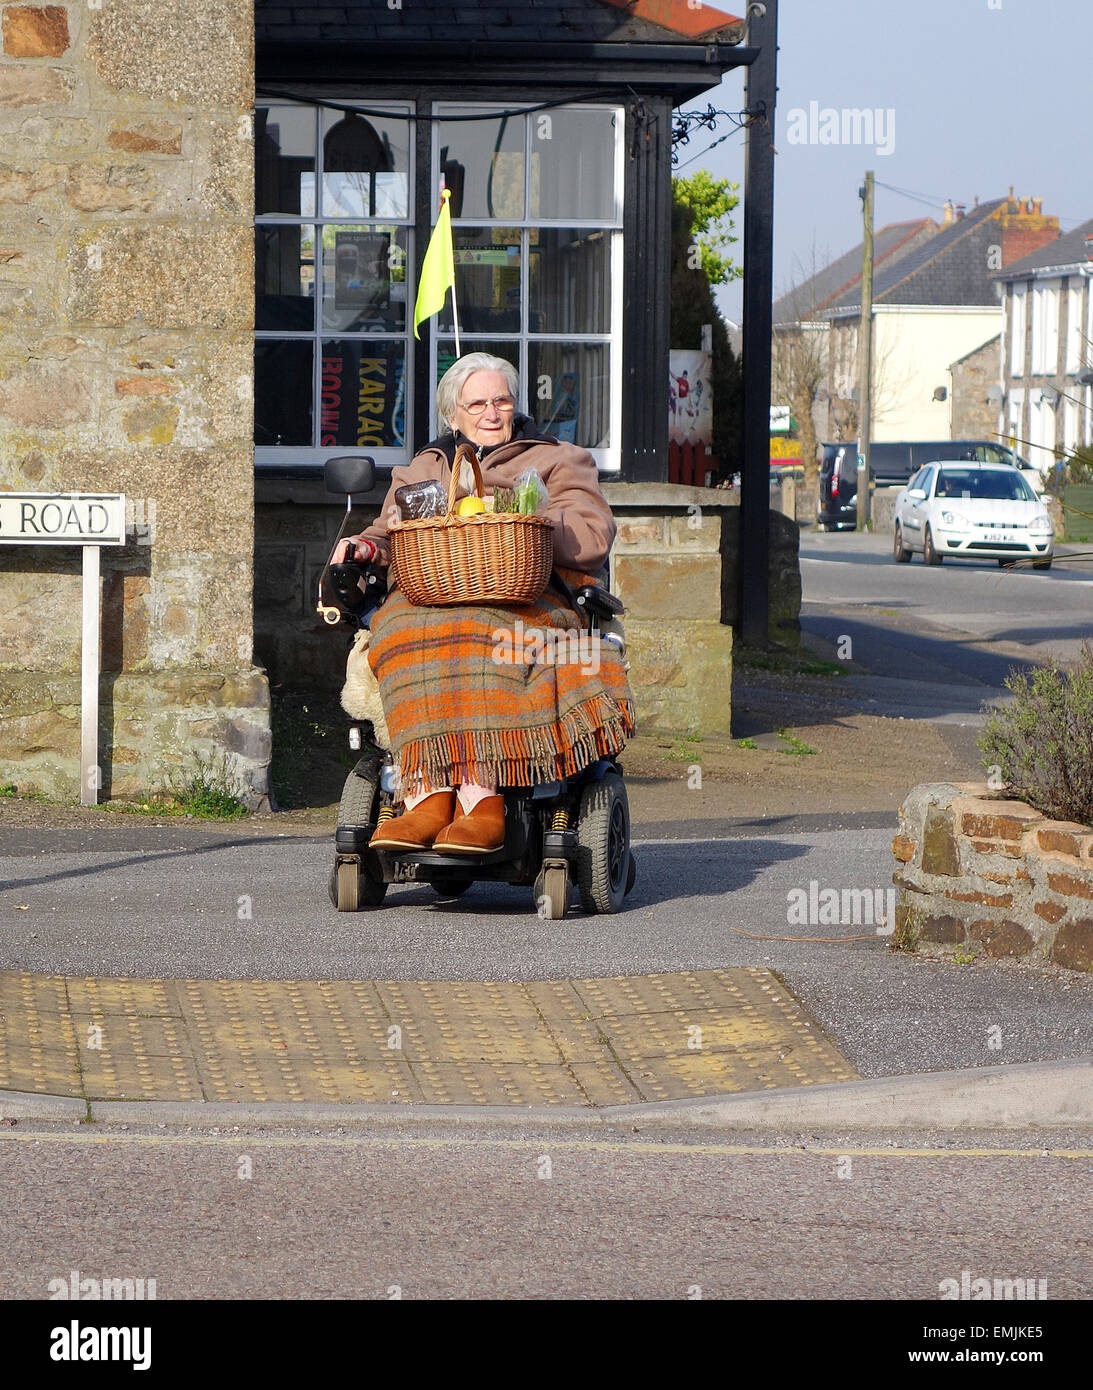 an elderly lady waiting  to cross the road on a mobility scooter - Stock Image